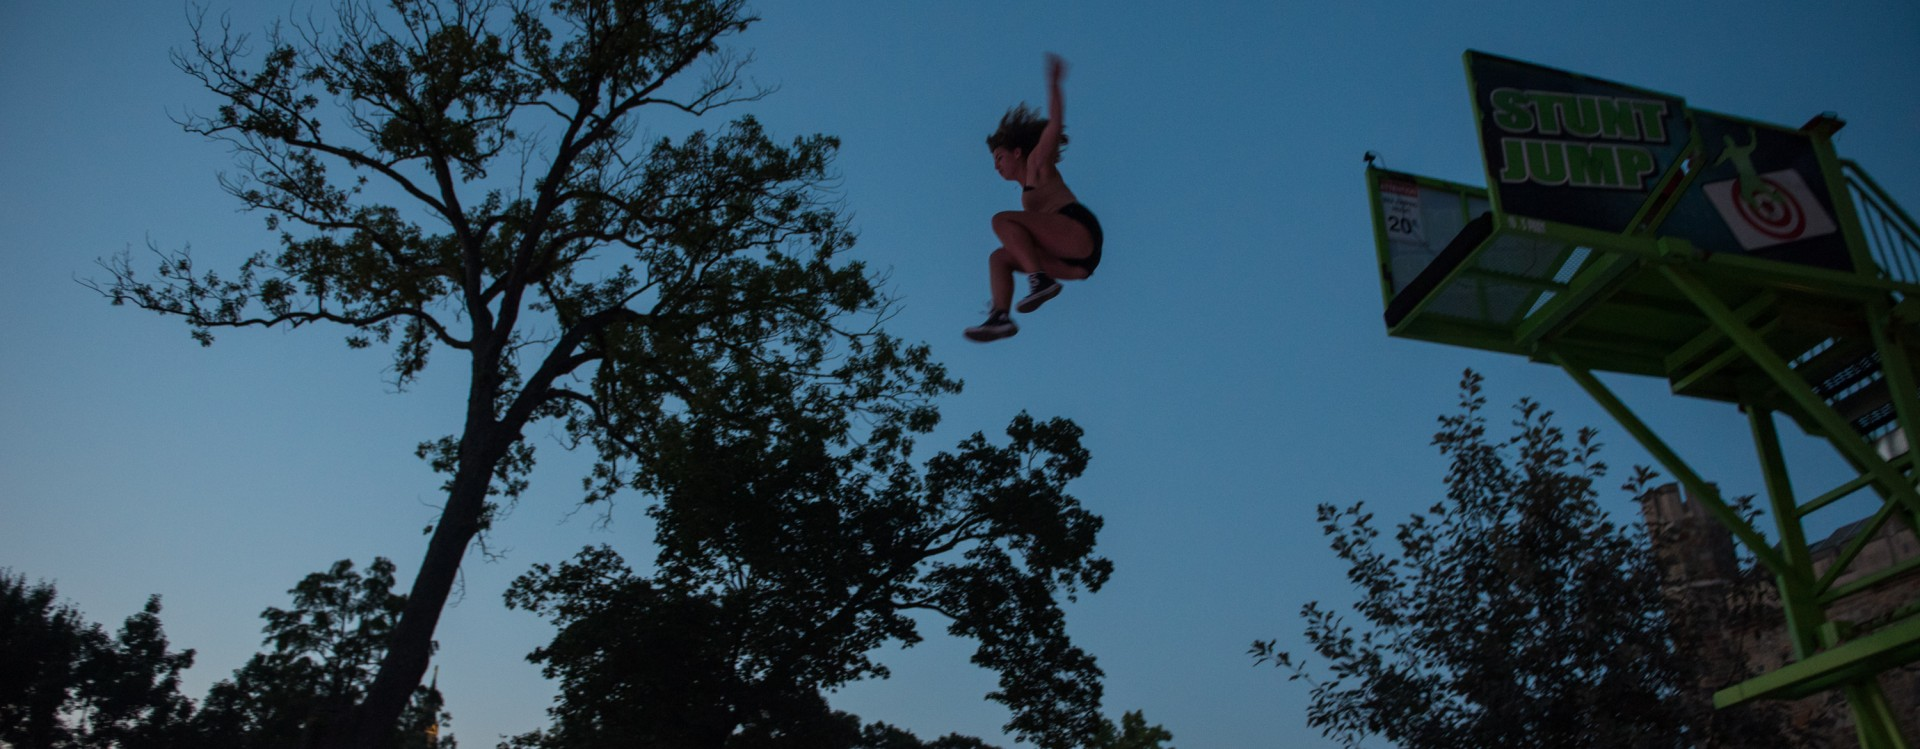 "Student trying out a stunt jump at Lehigh After Dark ""Nightvision"" event."